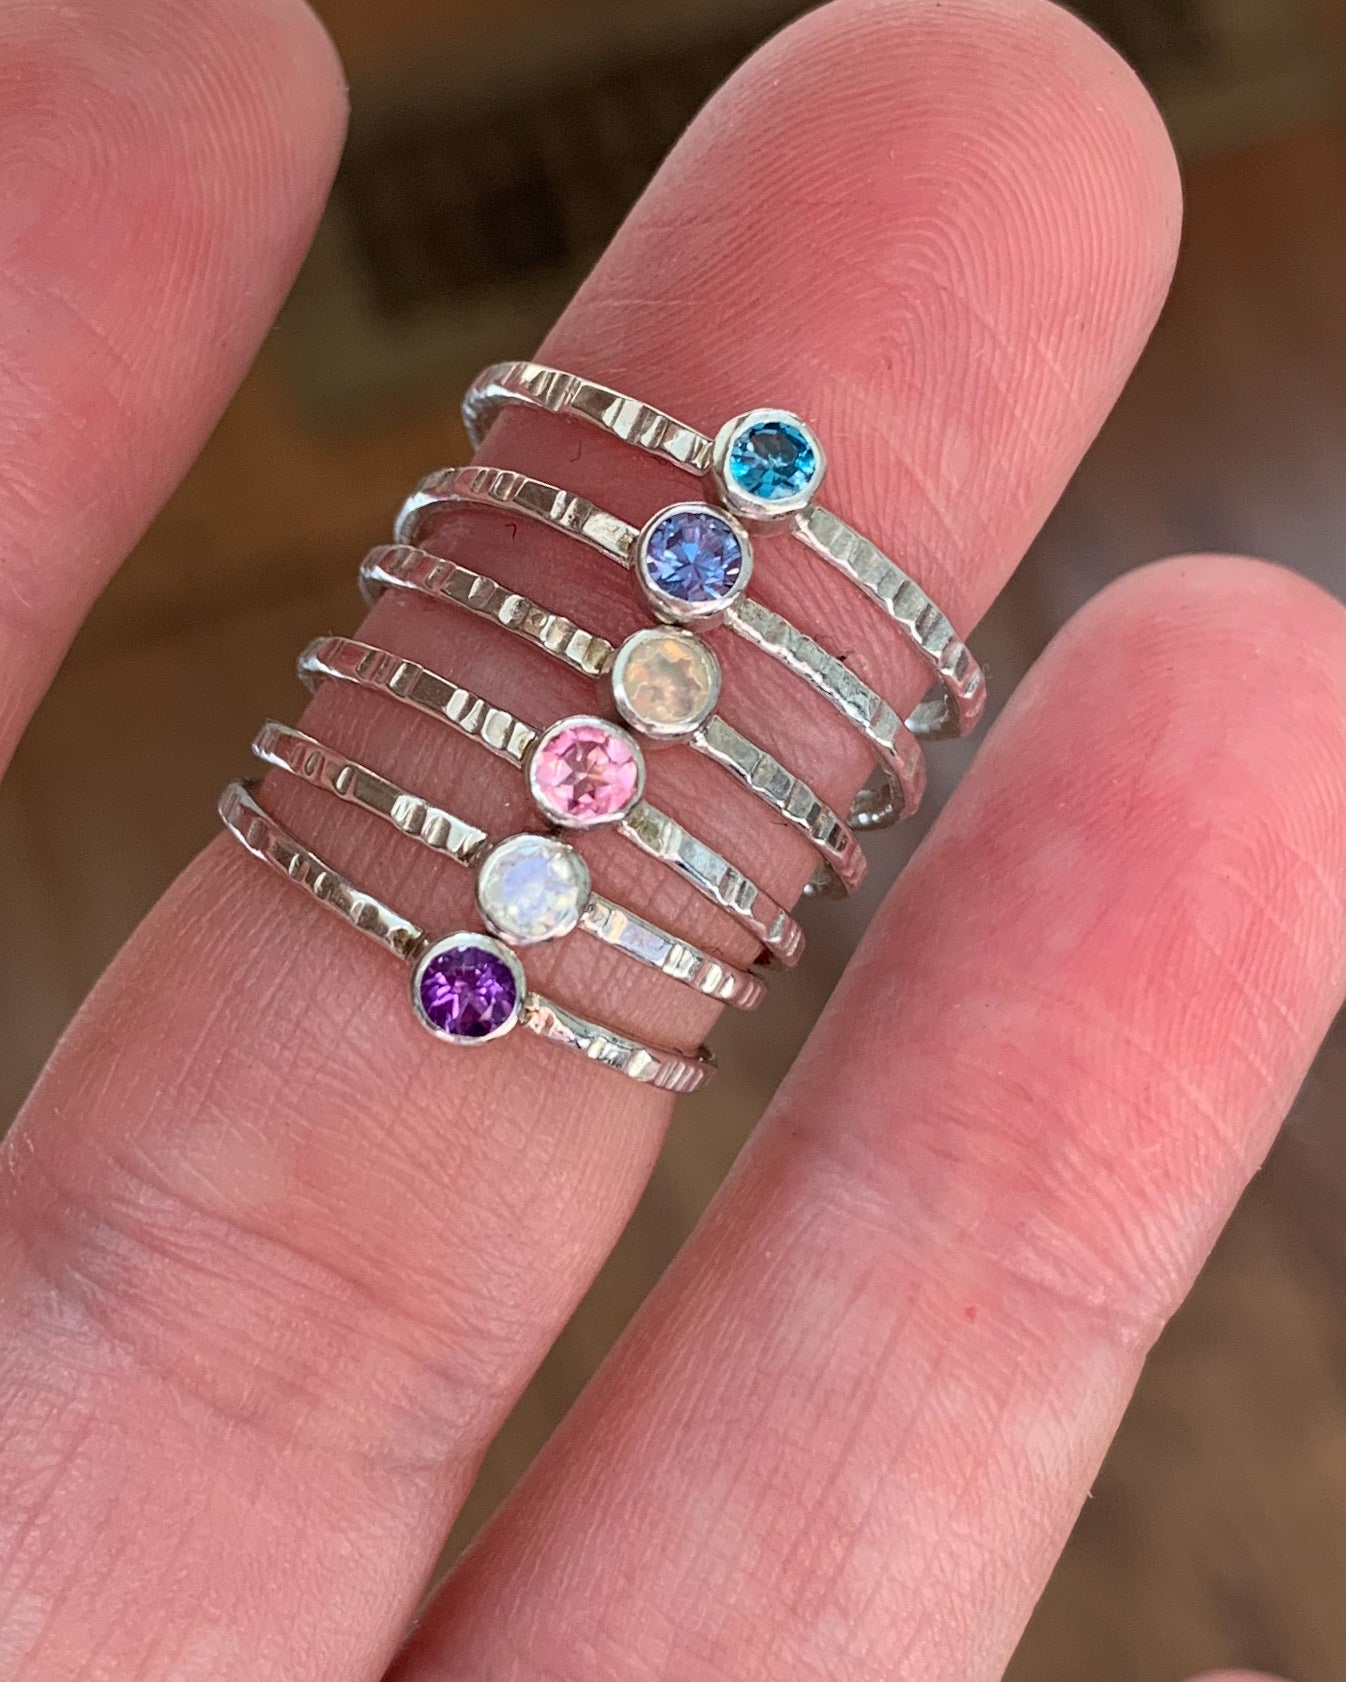 "G E M S T O N E ring - SAMPLE SALE - SILVER - promo code ""SAMPLE SALE"" for 40% OFF"